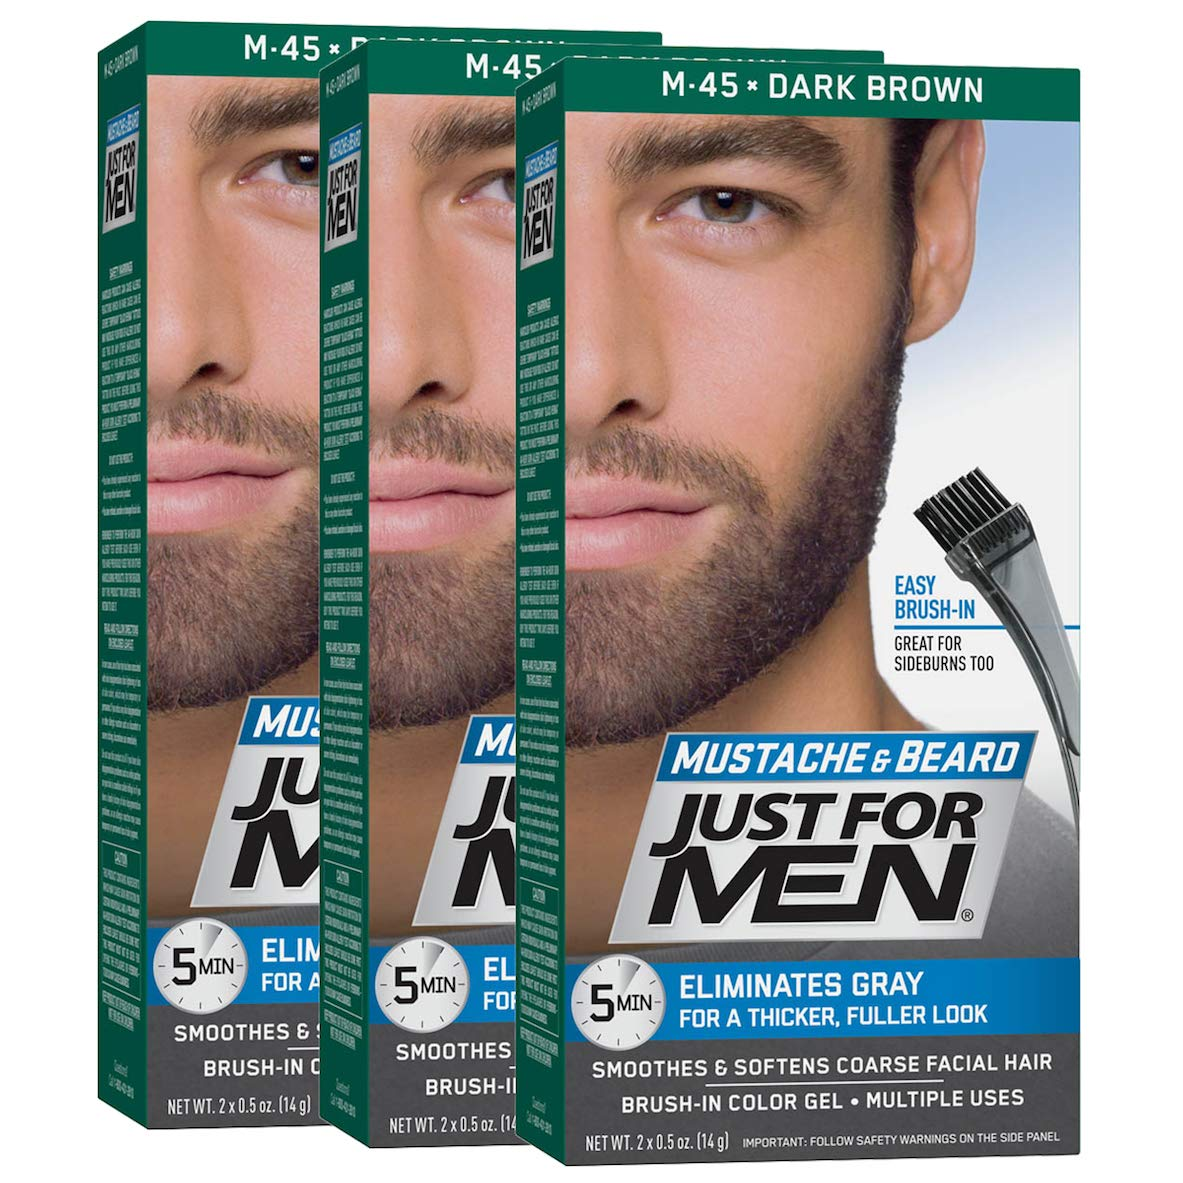 Just For Men Mustache and Beard Brush-In Color Gel, Dark Brown (Pack of 3) 011509049049